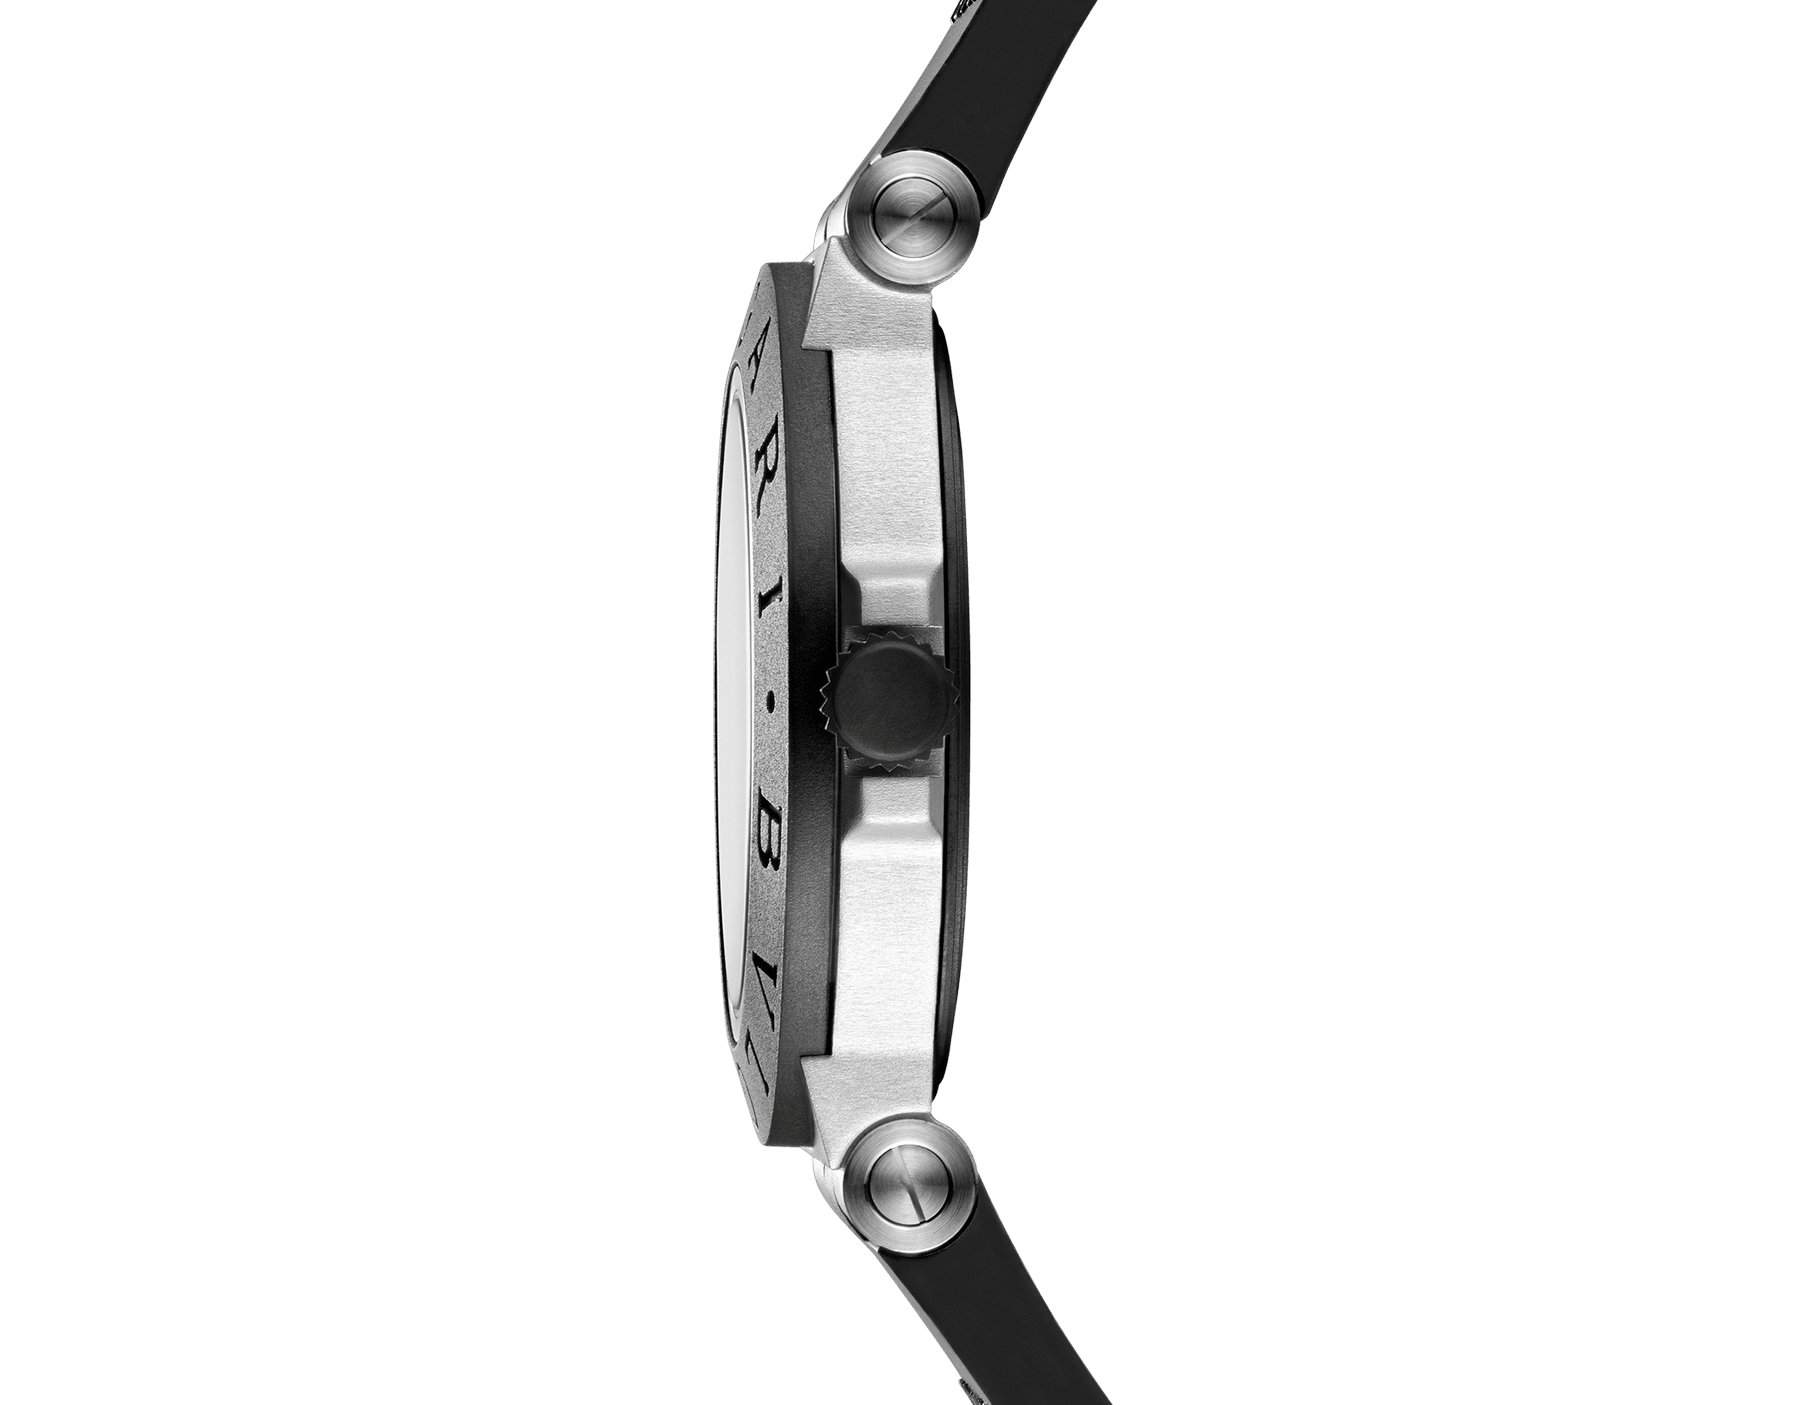 Bvlgari Aluminium watch with mechanical movement with automatic winding, 40 mm aluminum and titanium case, black rubber bezel with BVLGARI BVLGARI engraving, black dial and black rubber bracelet. Water-resistant up to 100 meters. 103445 image 3